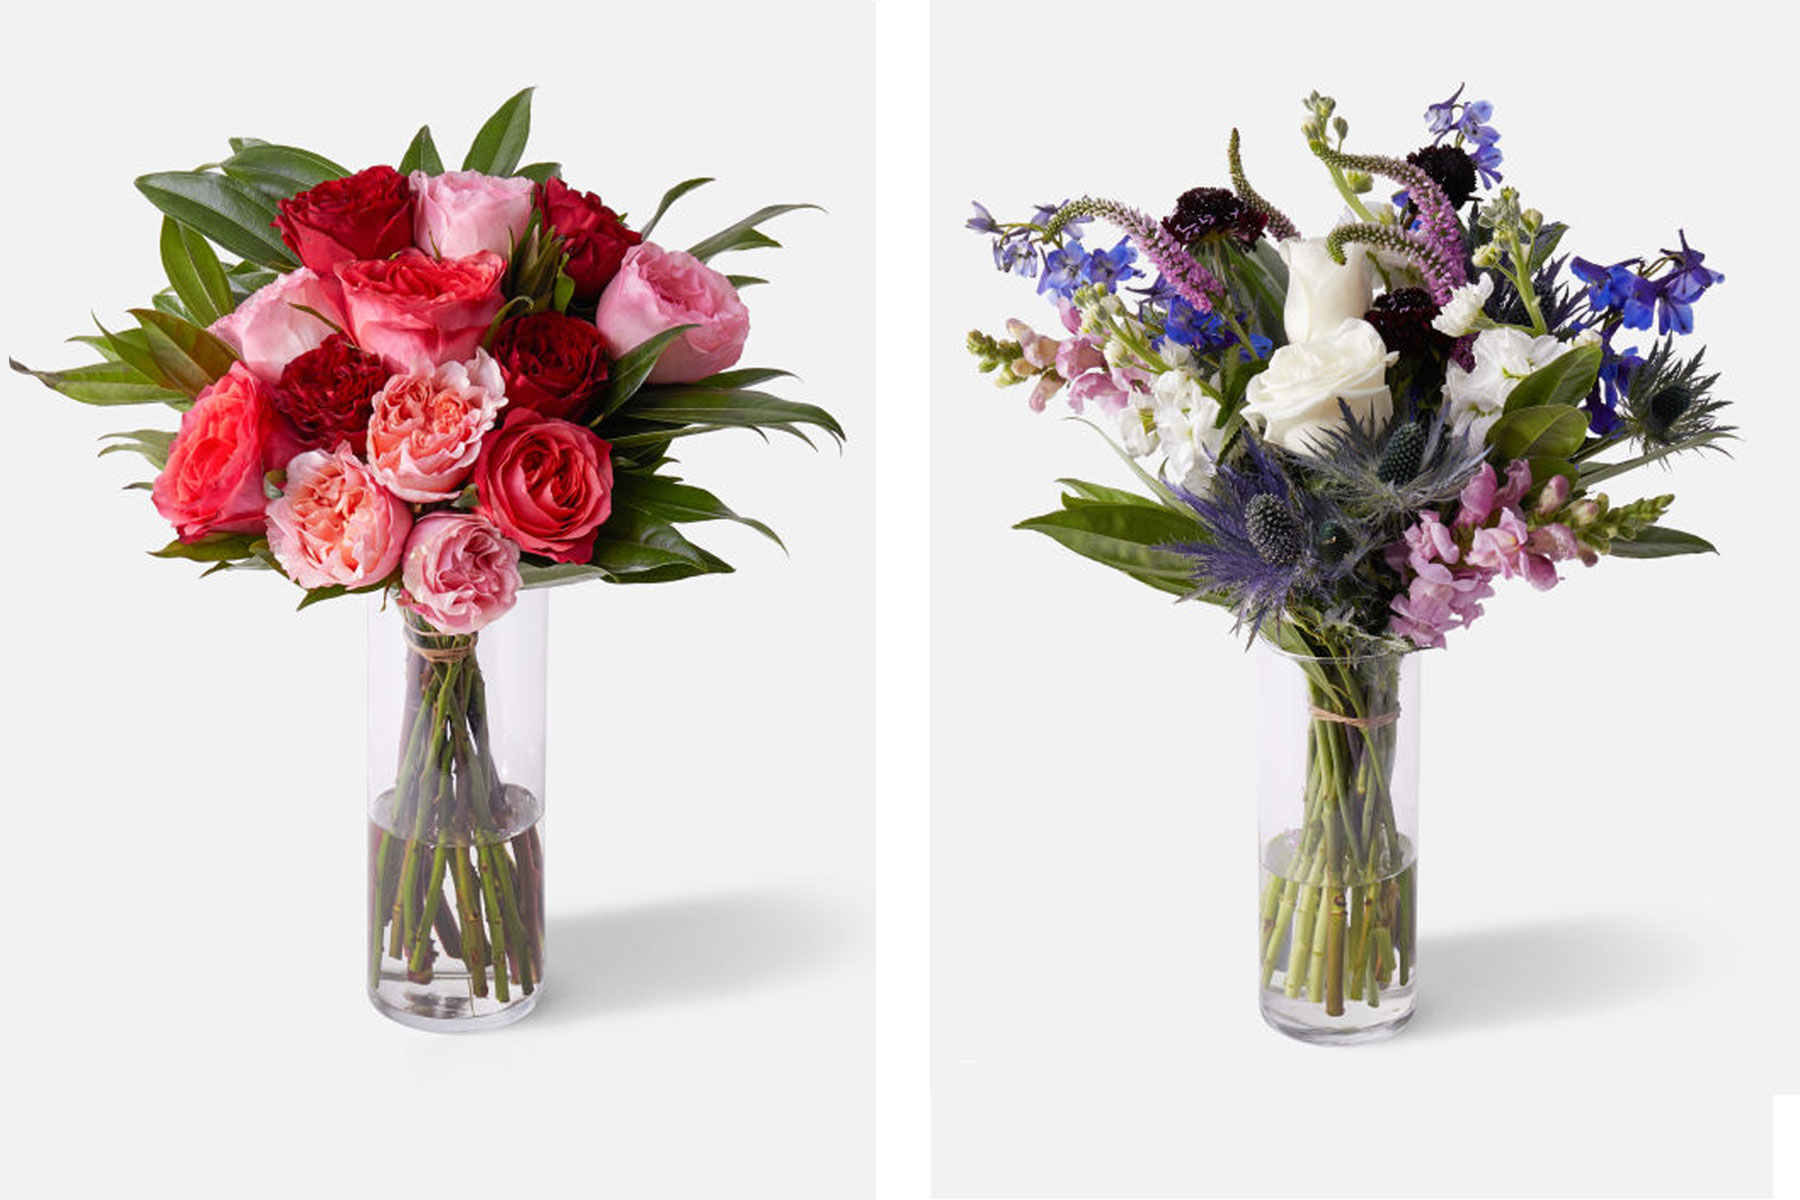 Two floral bouquets